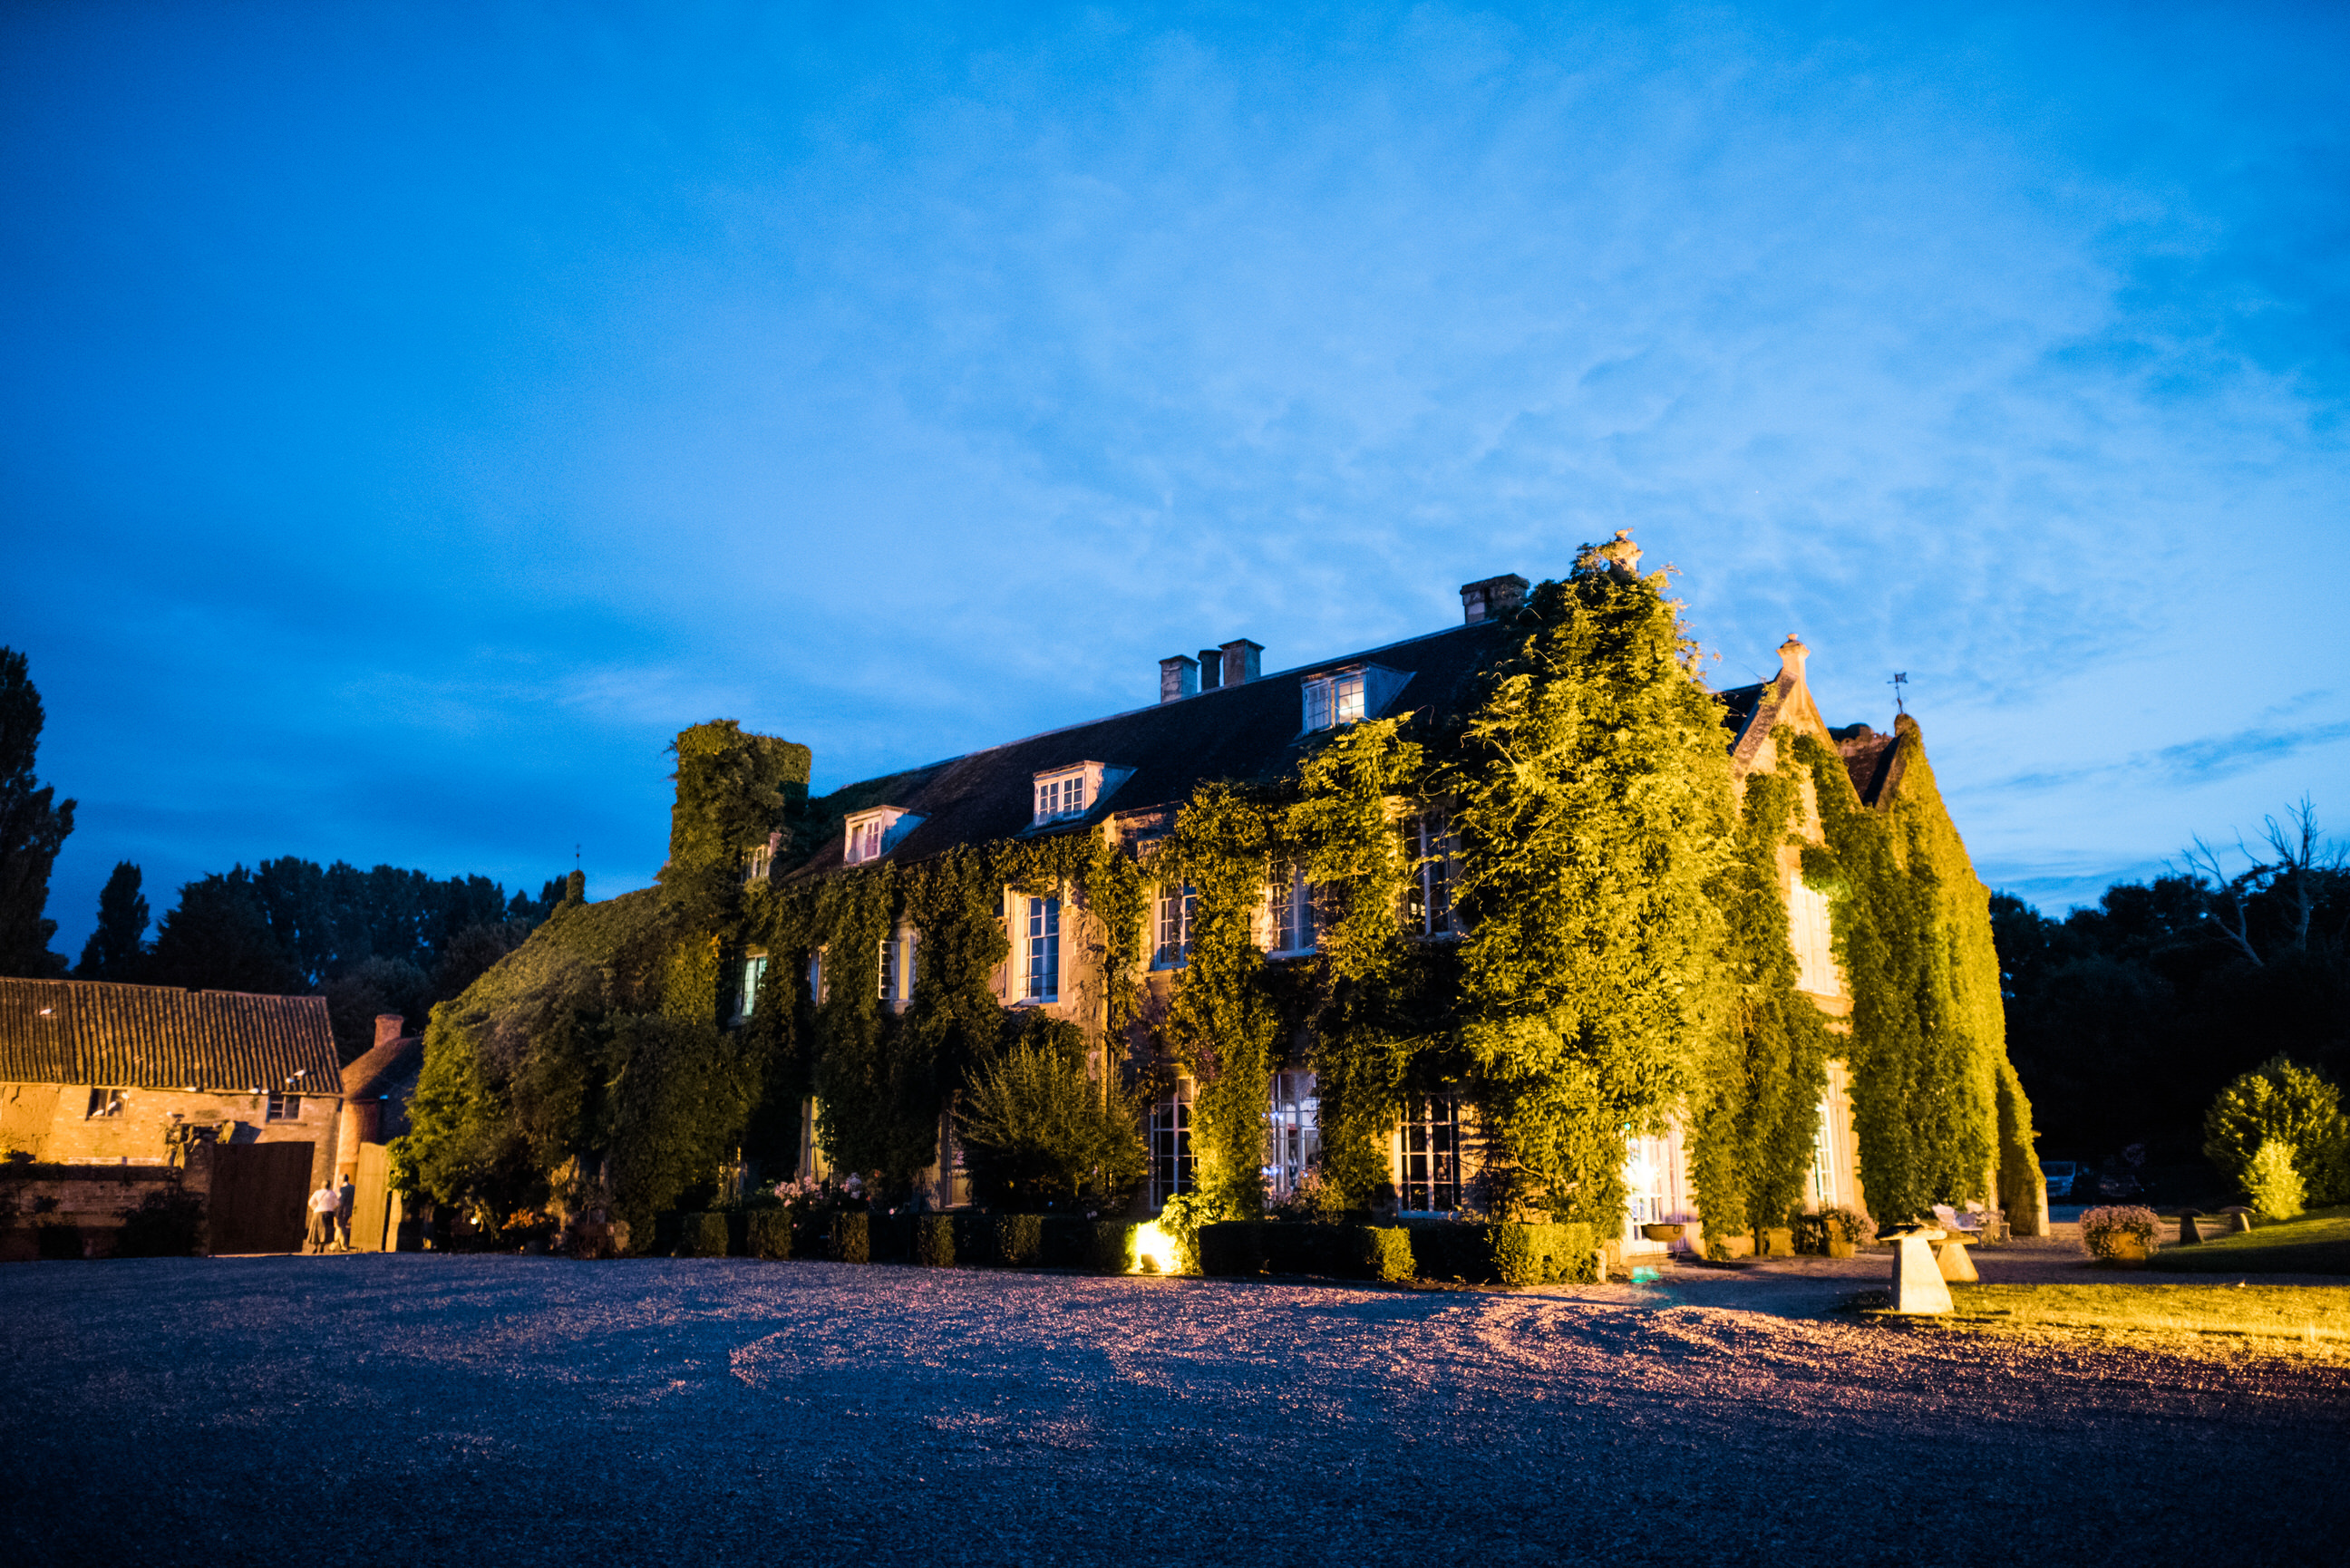 Maunsel House at night